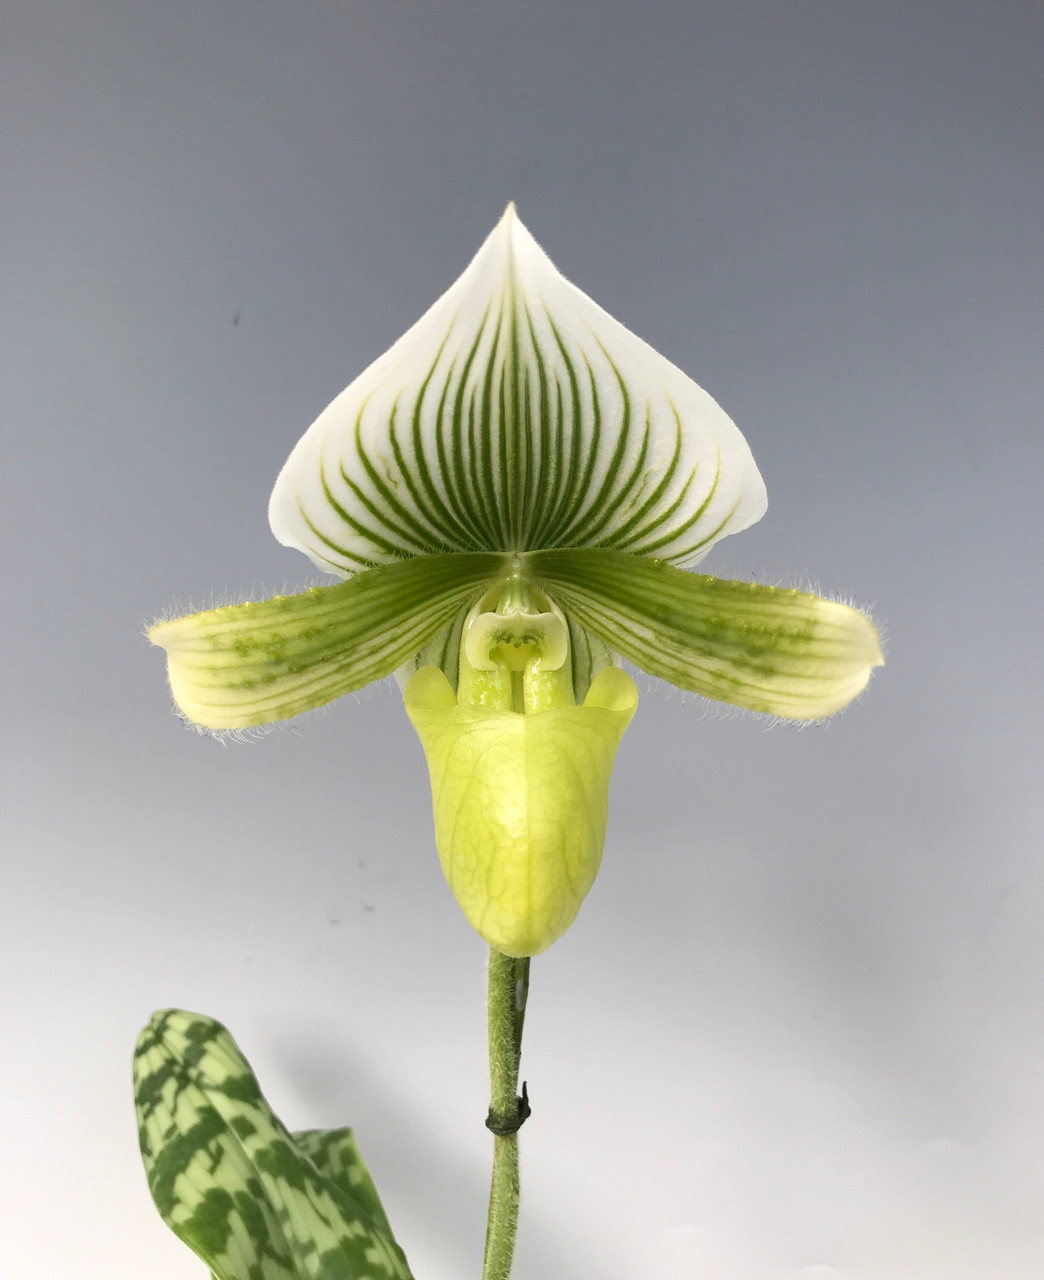 Paph. Maudiae type - green and white